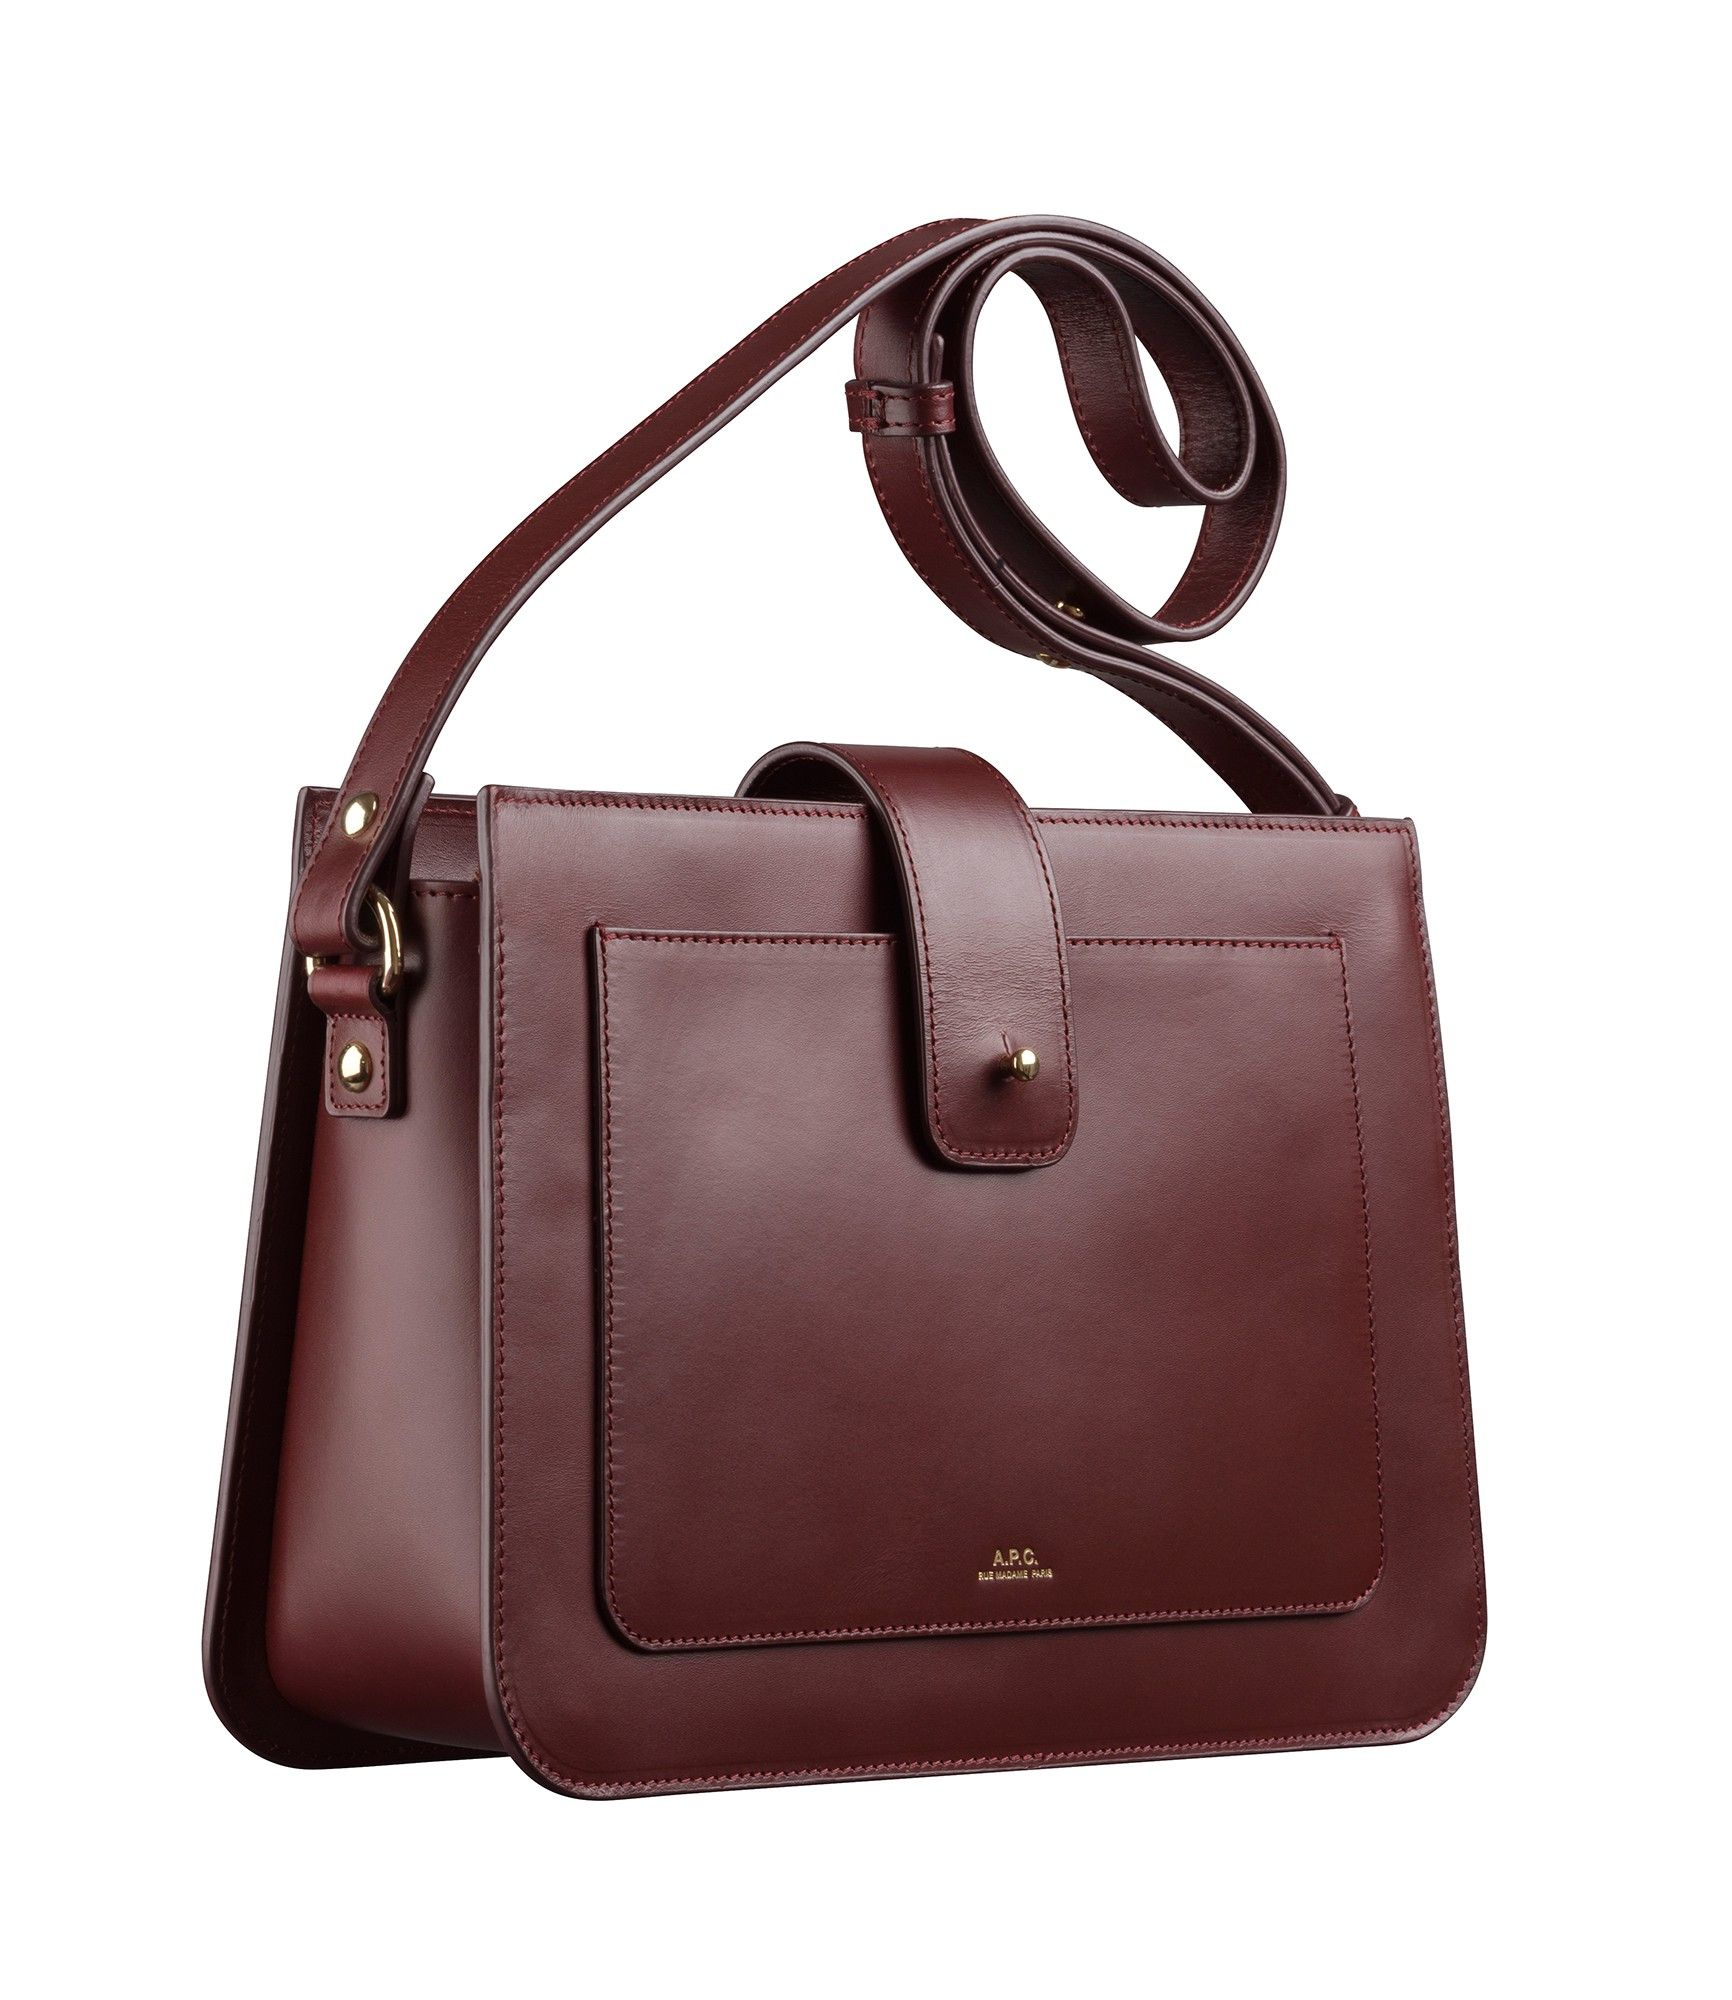 34a346f416 Sac Albane - Women's Bag - Smooth leather - Natural beige - A.P.C.  accessories